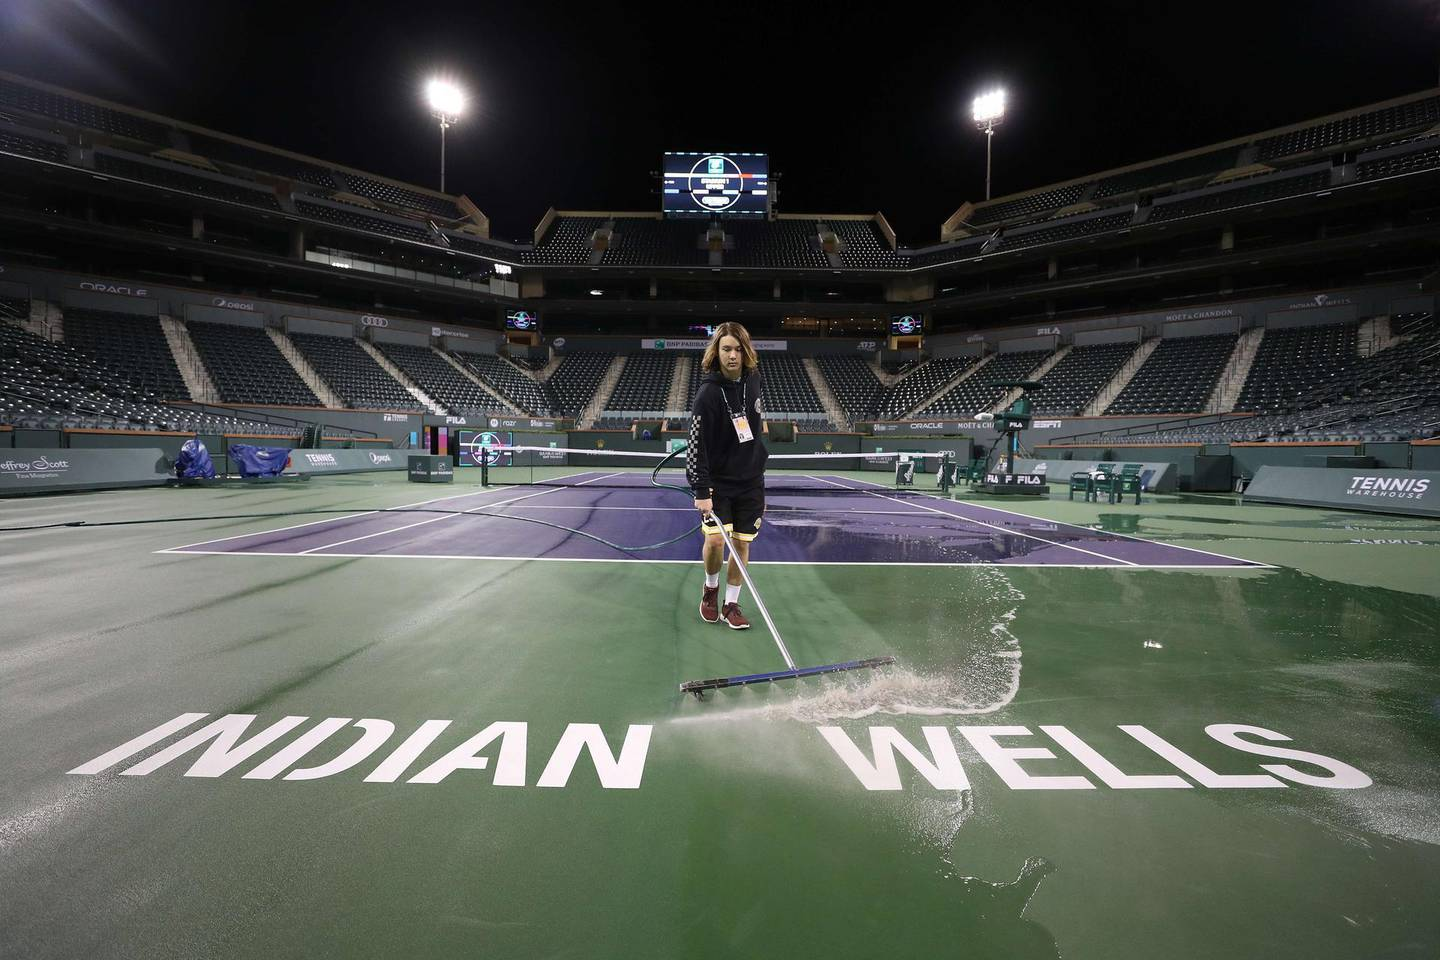 INDIAN WELLS, CALIFORNIA - MARCH 08: Courtmaster Jeffrey Brooker cleans the center court at the Indian Wells Tennis Garden on March 08, 2020 in Indian Wells, California. The BNP Paribas Open was cancelled by the Riverside County Public Health Department, as county officials declared a public health emergency when a case of coronavirus (COVID-19) was confirmed in the area.   Al Bello/Getty Images/AFP == FOR NEWSPAPERS, INTERNET, TELCOS & TELEVISION USE ONLY ==